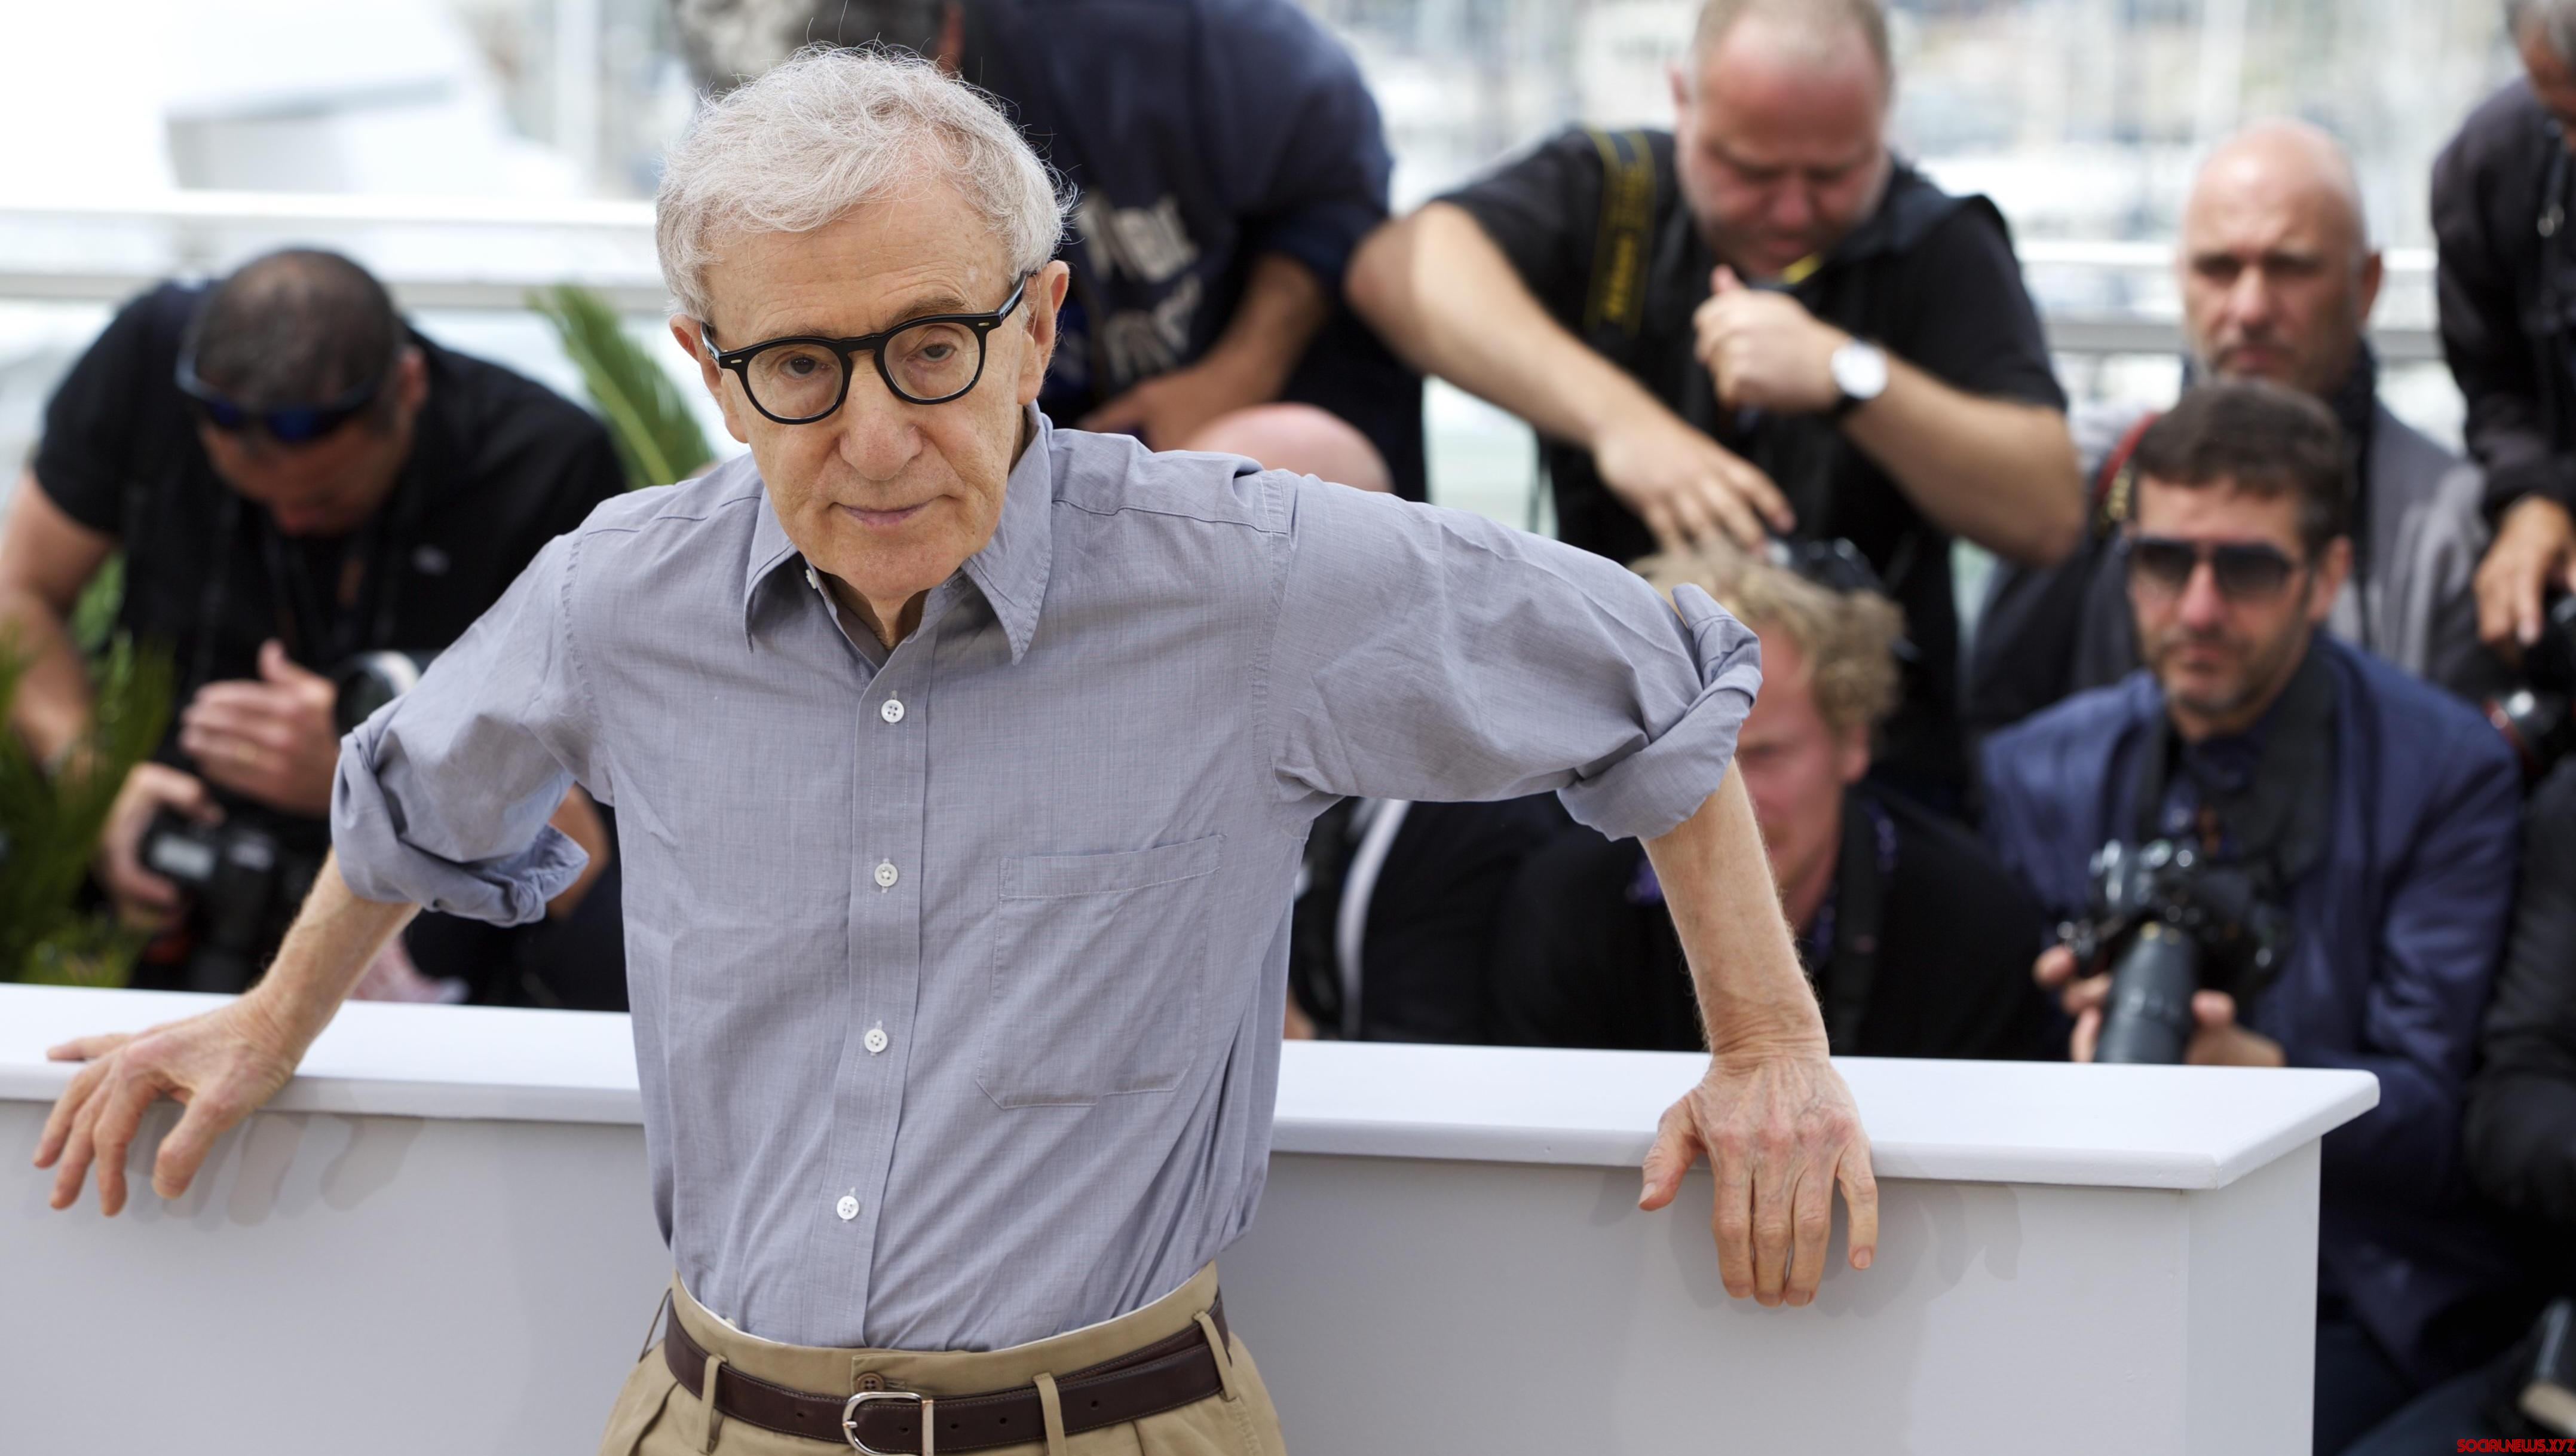 Woody Allen: Timothee Chalamet condemned me to boost Oscar chances